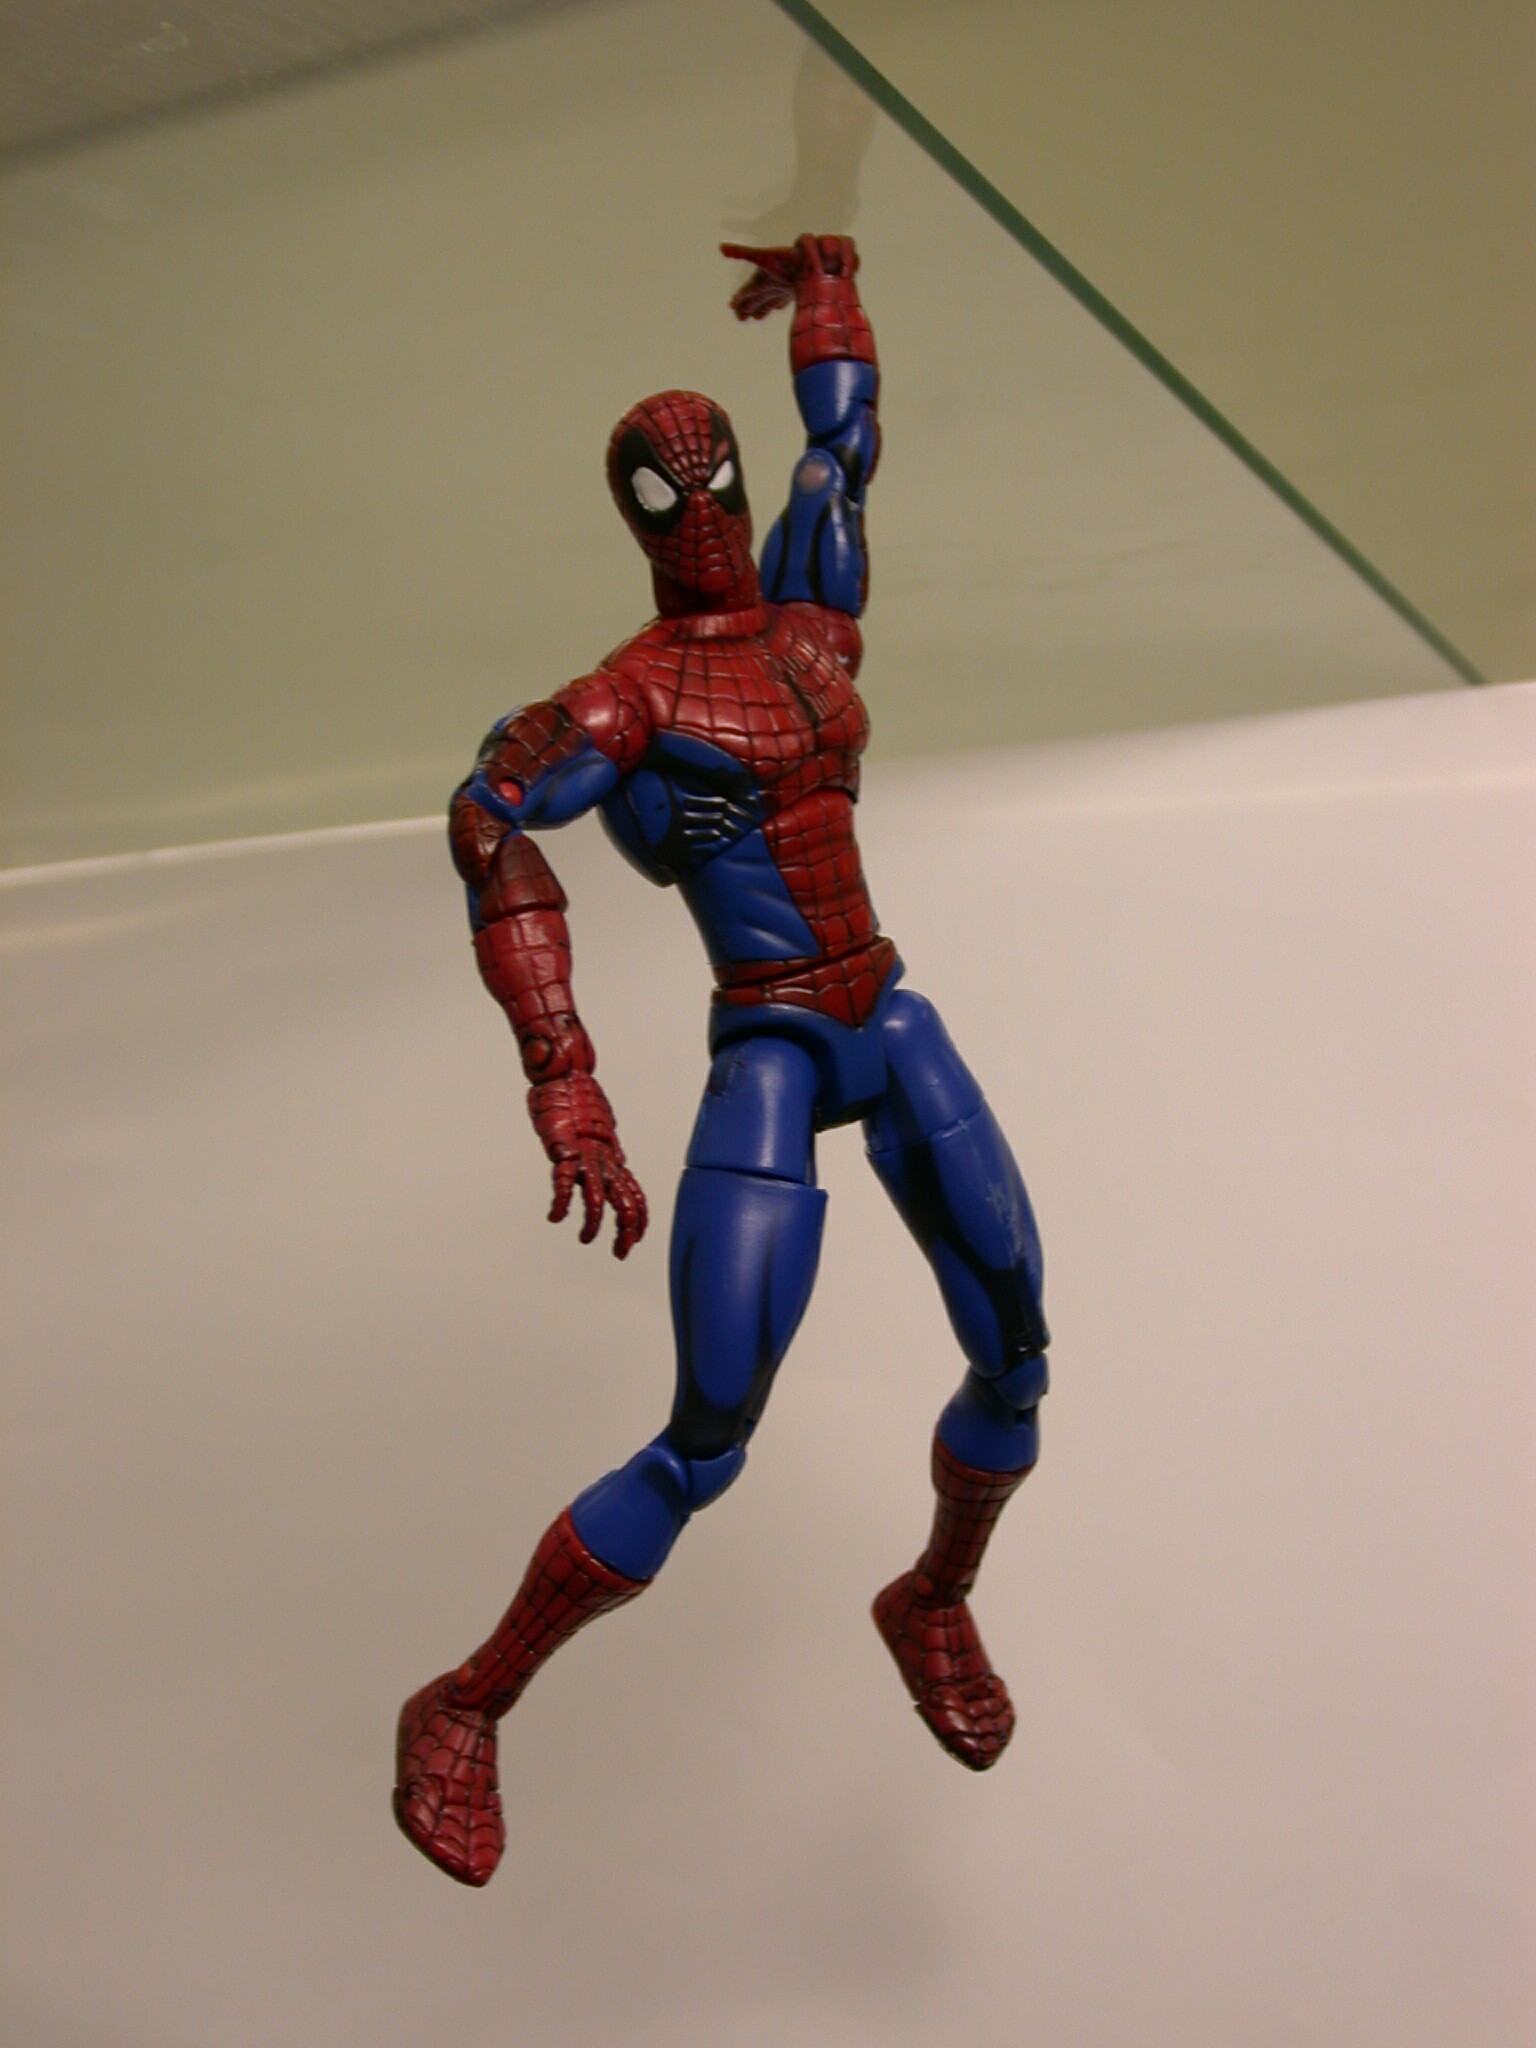 Figure 1b: Spiderman toy hanging from a glass plate, attached using the Gecko-tape. The contact area is about 0.5cm2 with a carry load of >100g. This toy has been attached to several surfaces before this photo was taken.